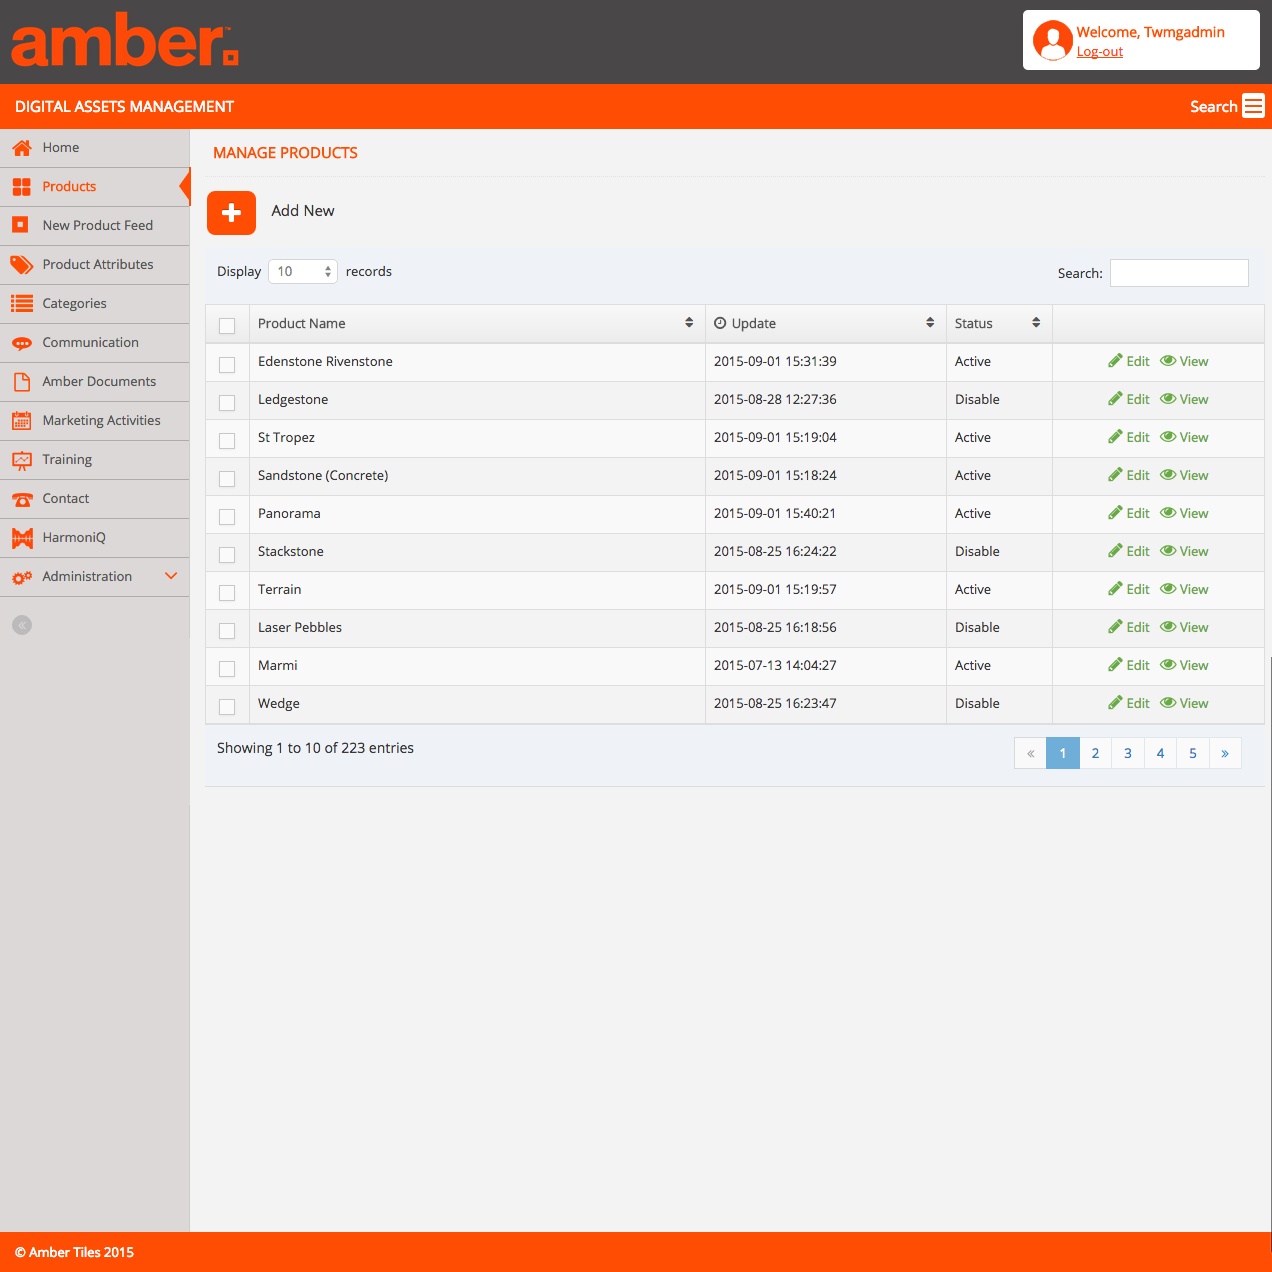 Check out Amber Tiles DAM - Manage Products to know how our web developers and web design Sydney team to help your online marketing, SEO, SEM, social marketing and web development.